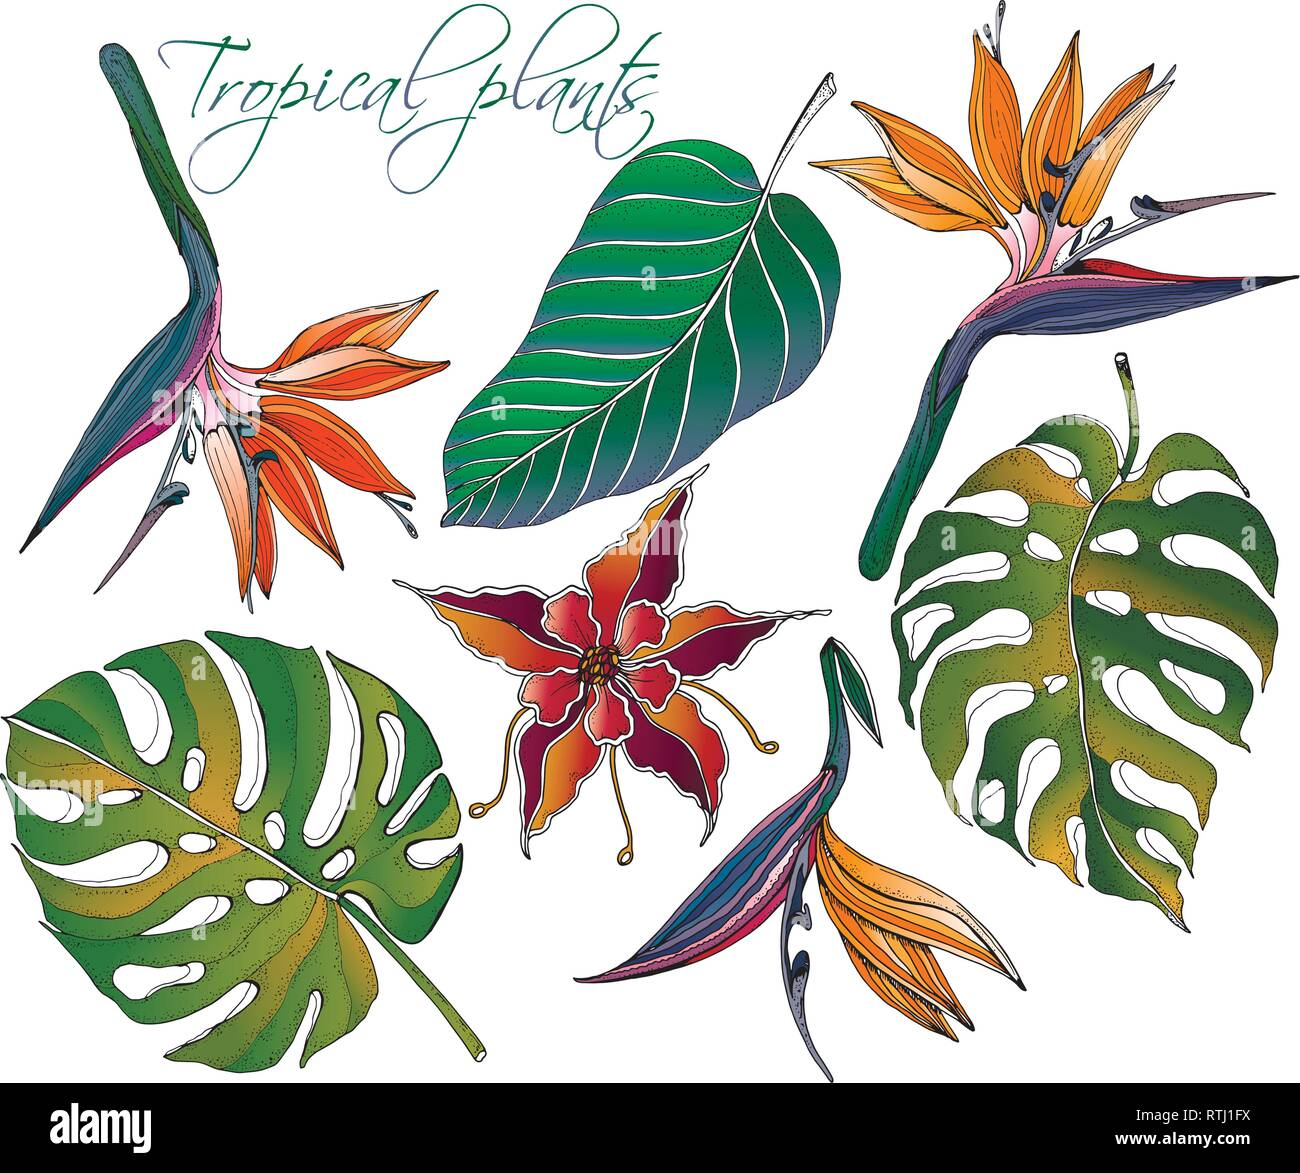 Doodle Floral Tropical Set Vector With Doodles Colorful Plants Bright Paradise Flowers With Green Banana Leaves Tropical Leaves Stock Vector Image Art Alamy Autumnal leaves doodle patterned on brown mobile phone wallpaper vector. https www alamy com doodle floral tropical set vector with doodles colorful plants bright paradise flowers with green banana leaves tropical leaves image238882894 html